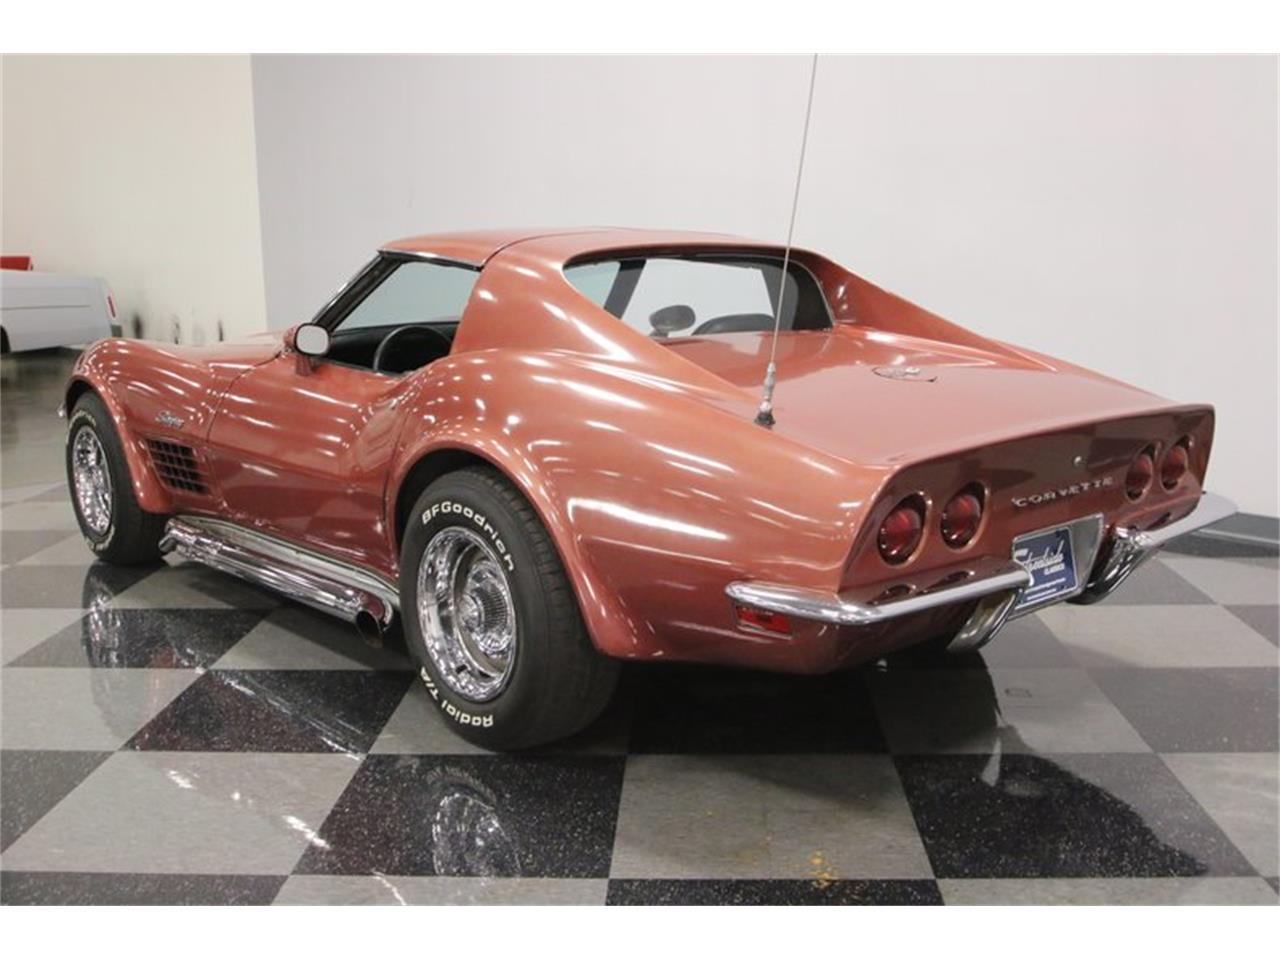 Large Picture of 1970 Corvette located in Tennessee - $19,995.00 - PQIK